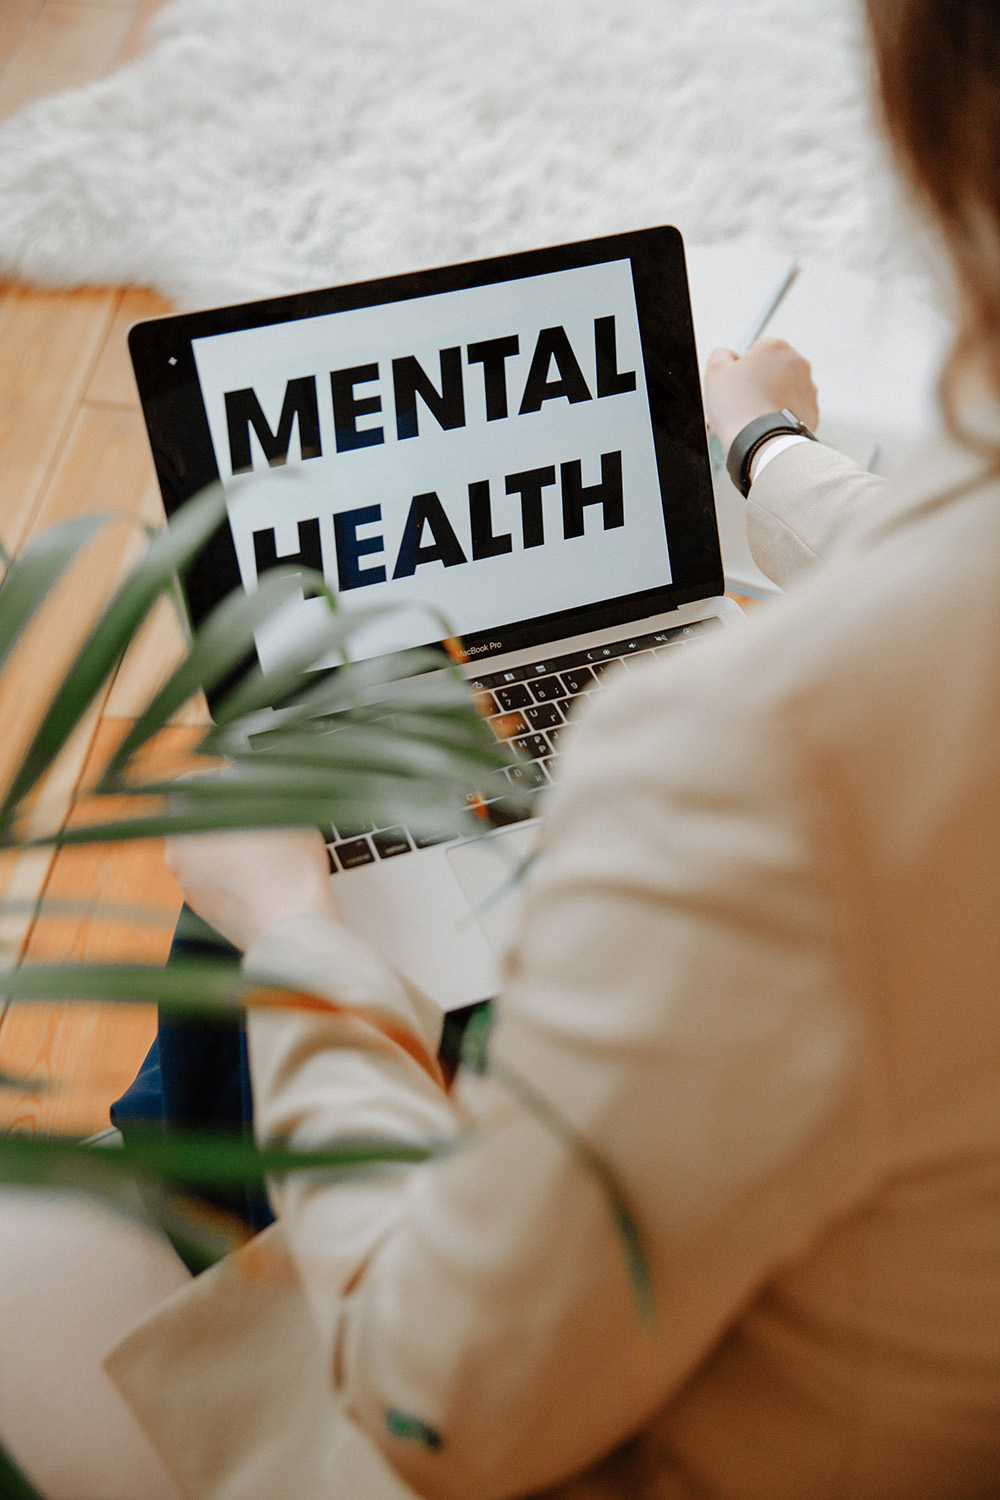 Assisting those with mental health illnesses